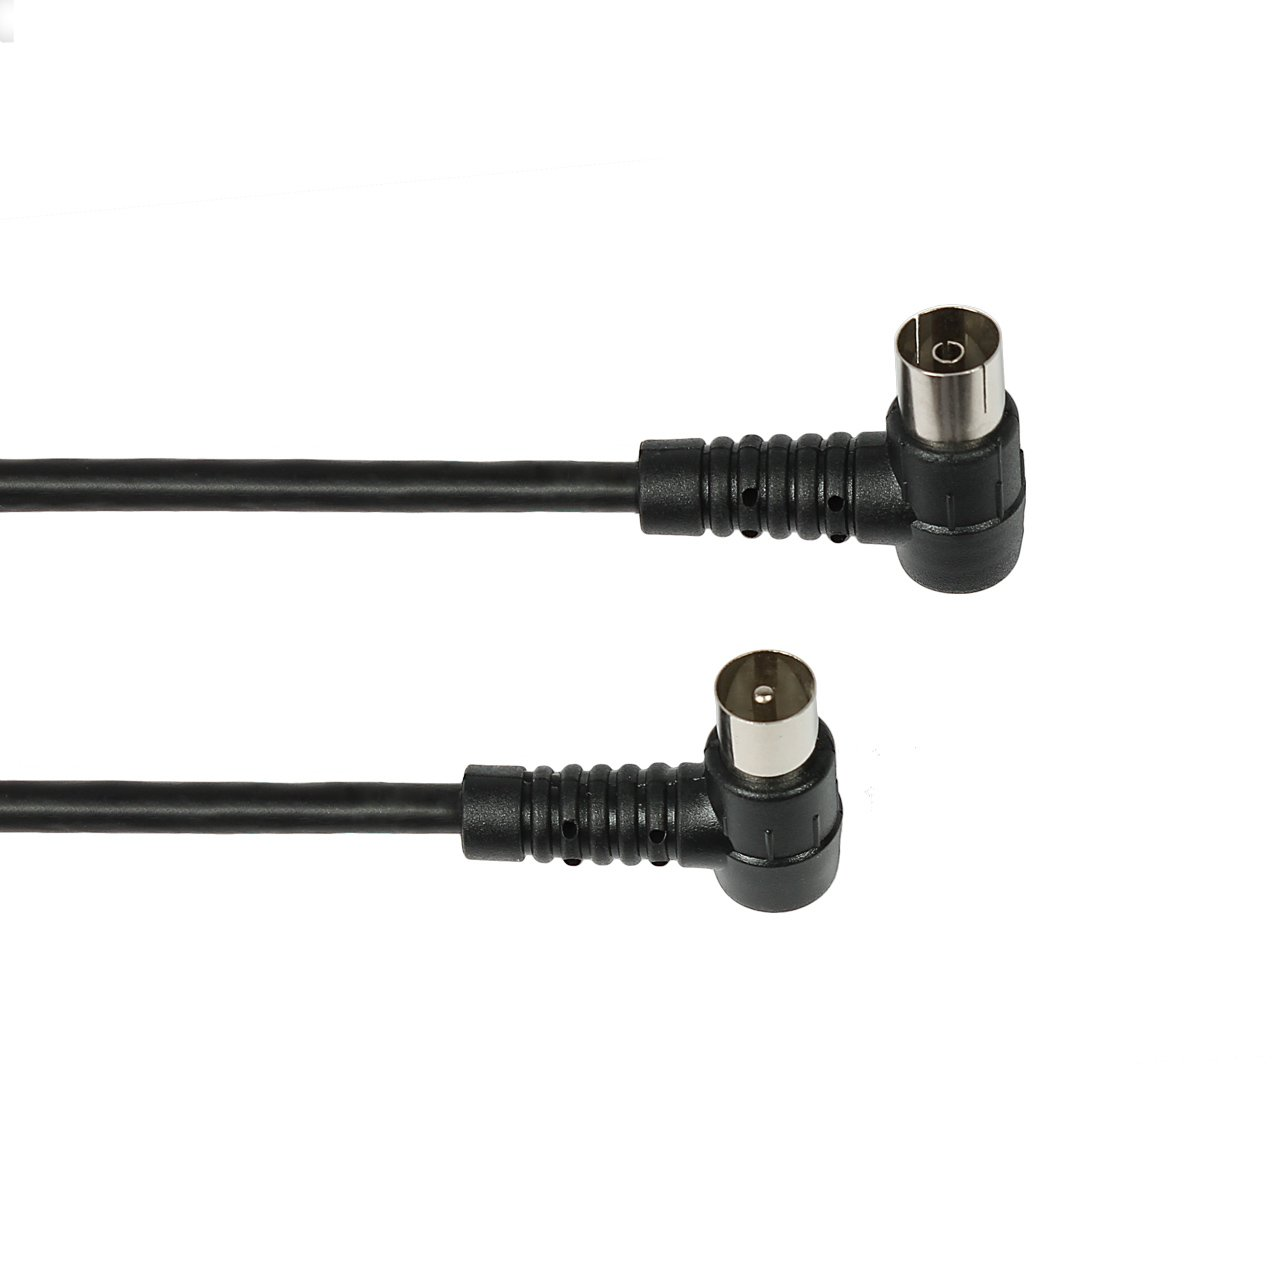 Vivanco 7/61 SW-N - Cable coaxial (1.5 metros), negro: Amazon.es: Electrónica